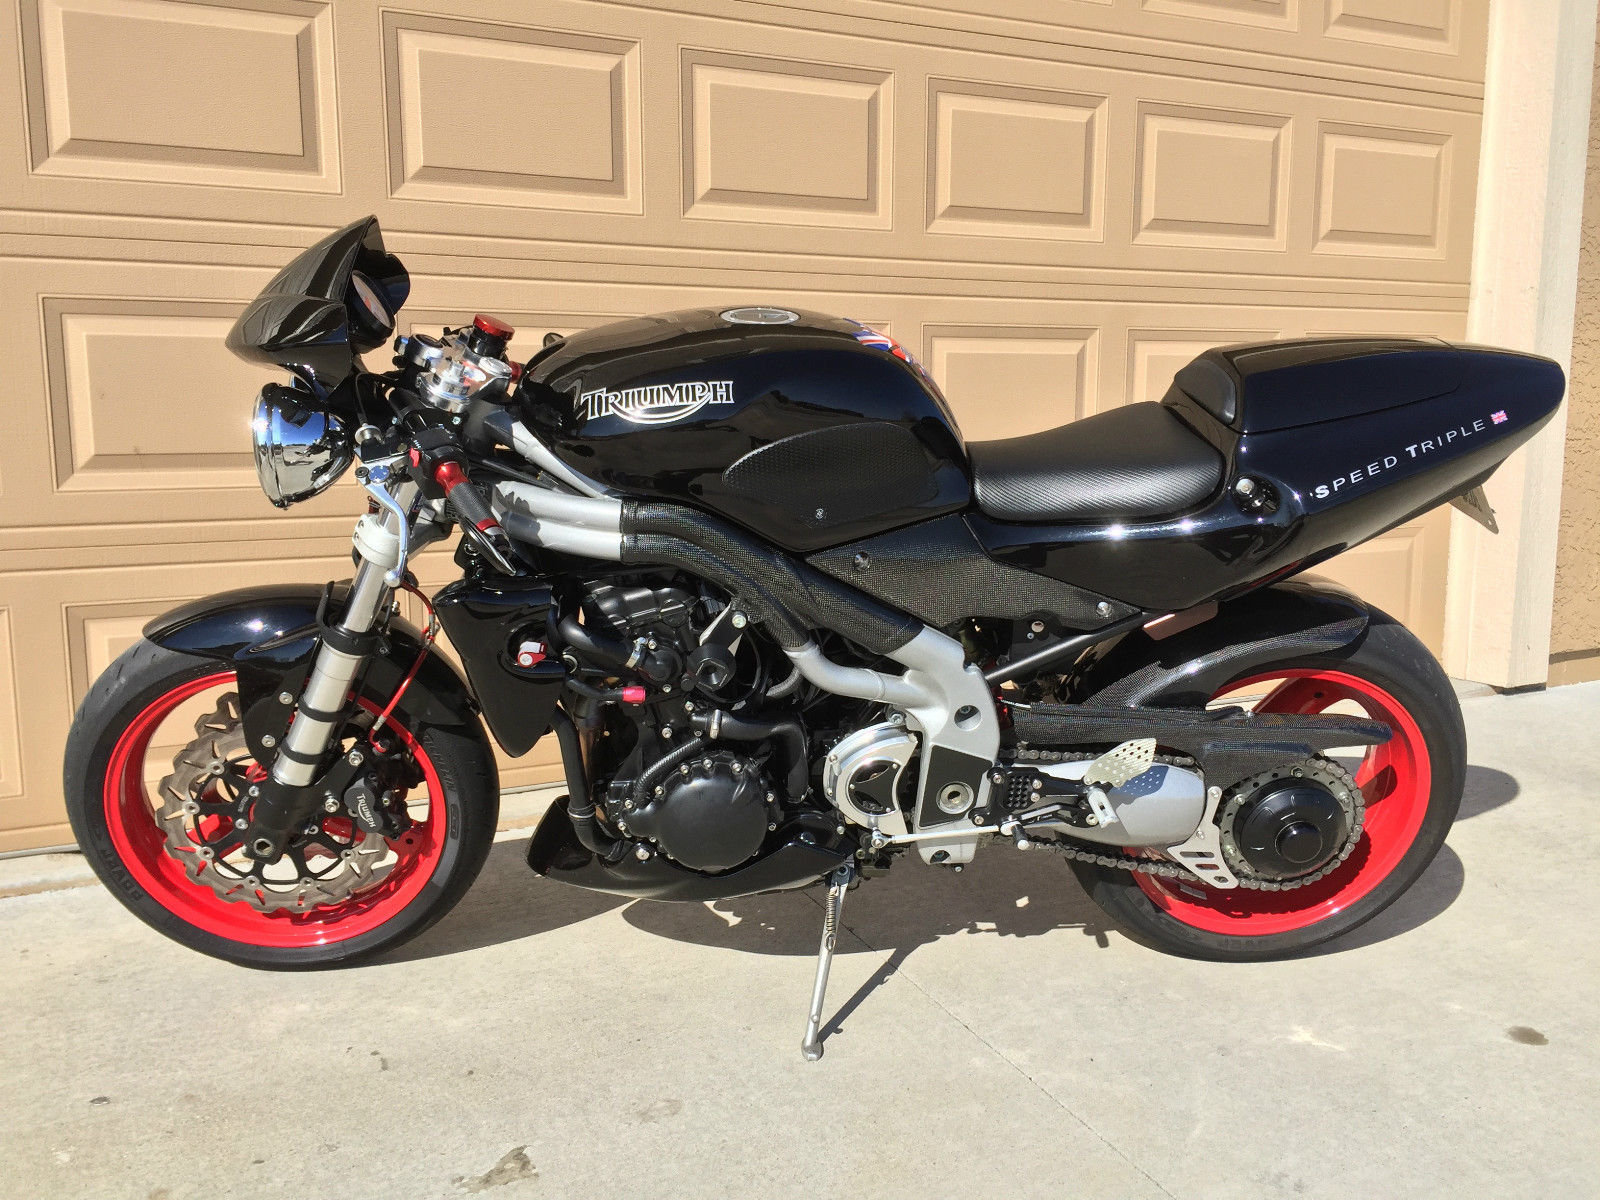 Dirty Mean And Naked 2003 Triumph Speed Triple Rare Sportbikes